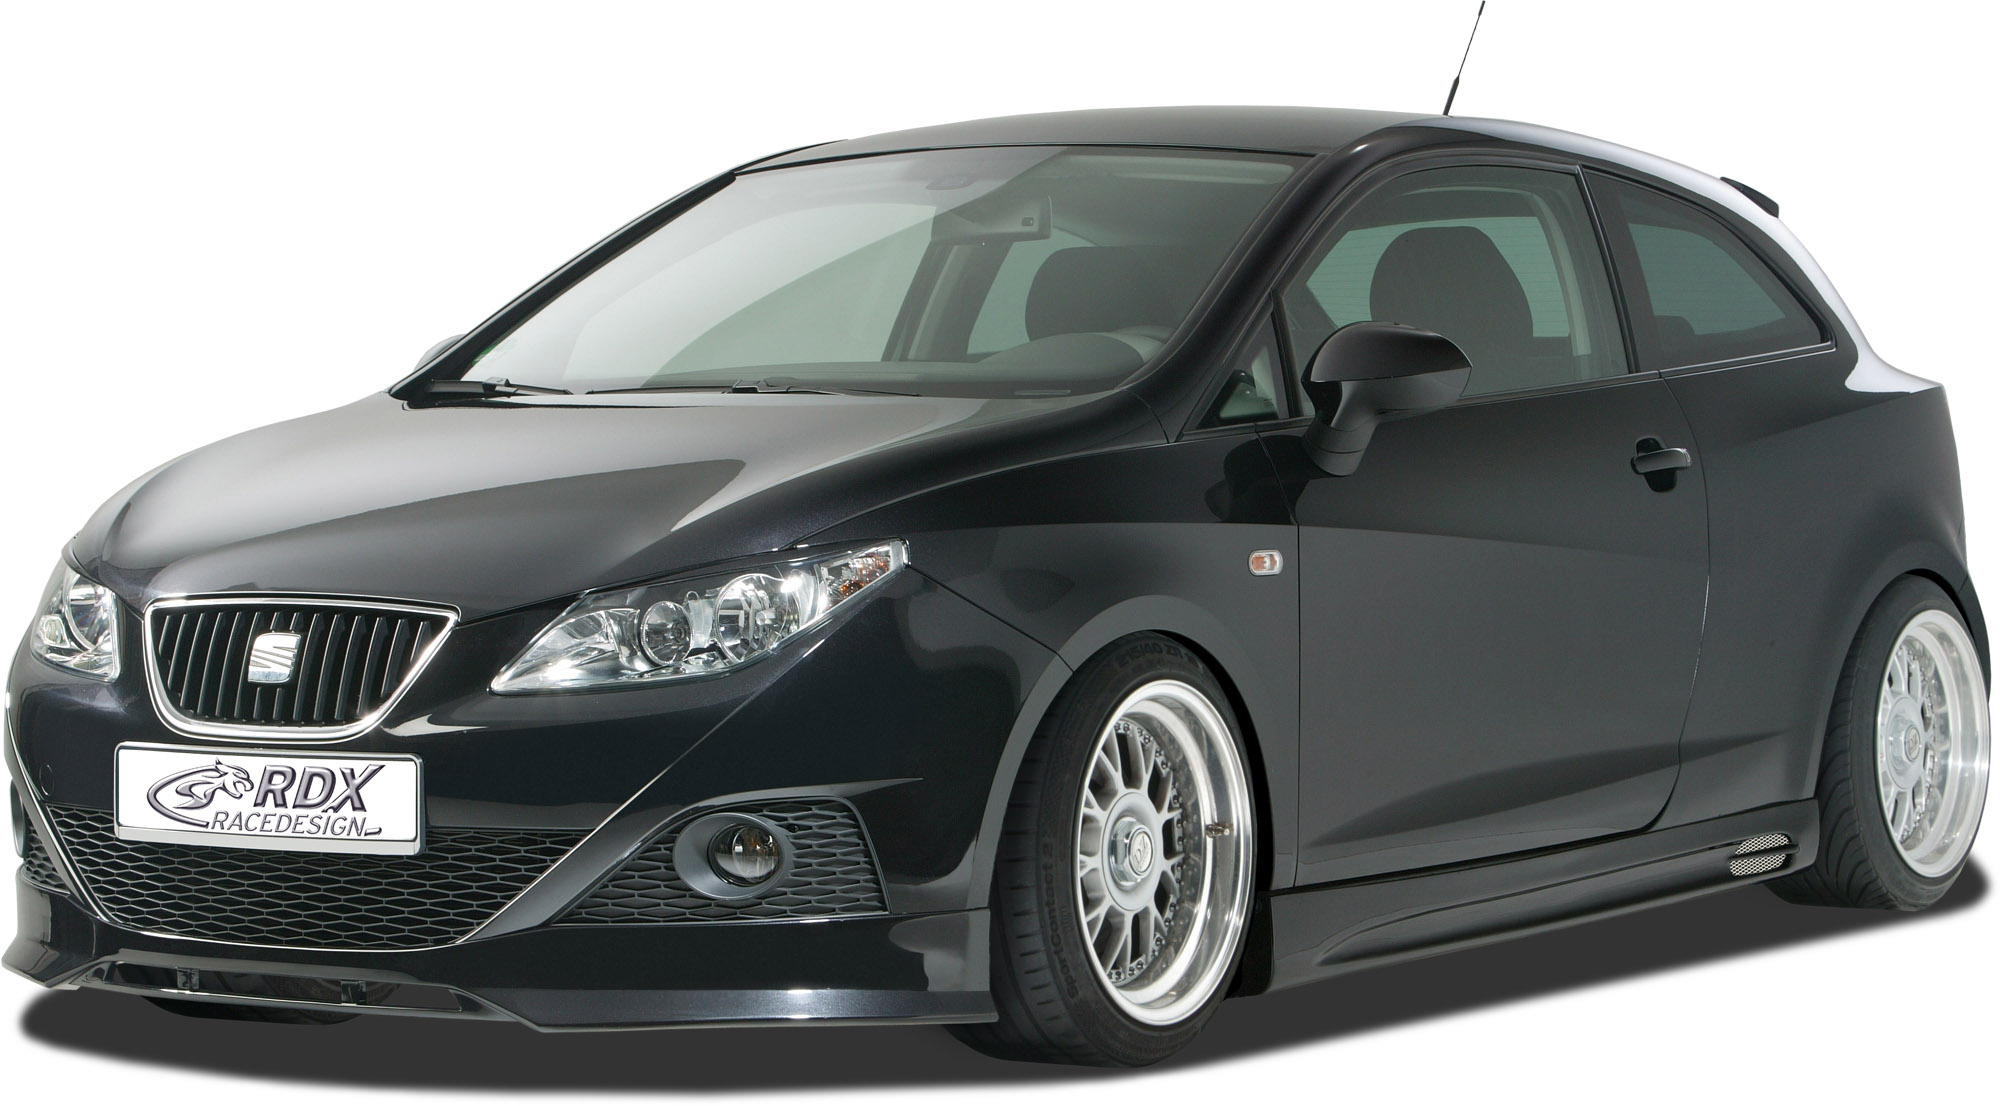 rdx racedesign refined seat ibiza 6j and 6j sc. Black Bedroom Furniture Sets. Home Design Ideas